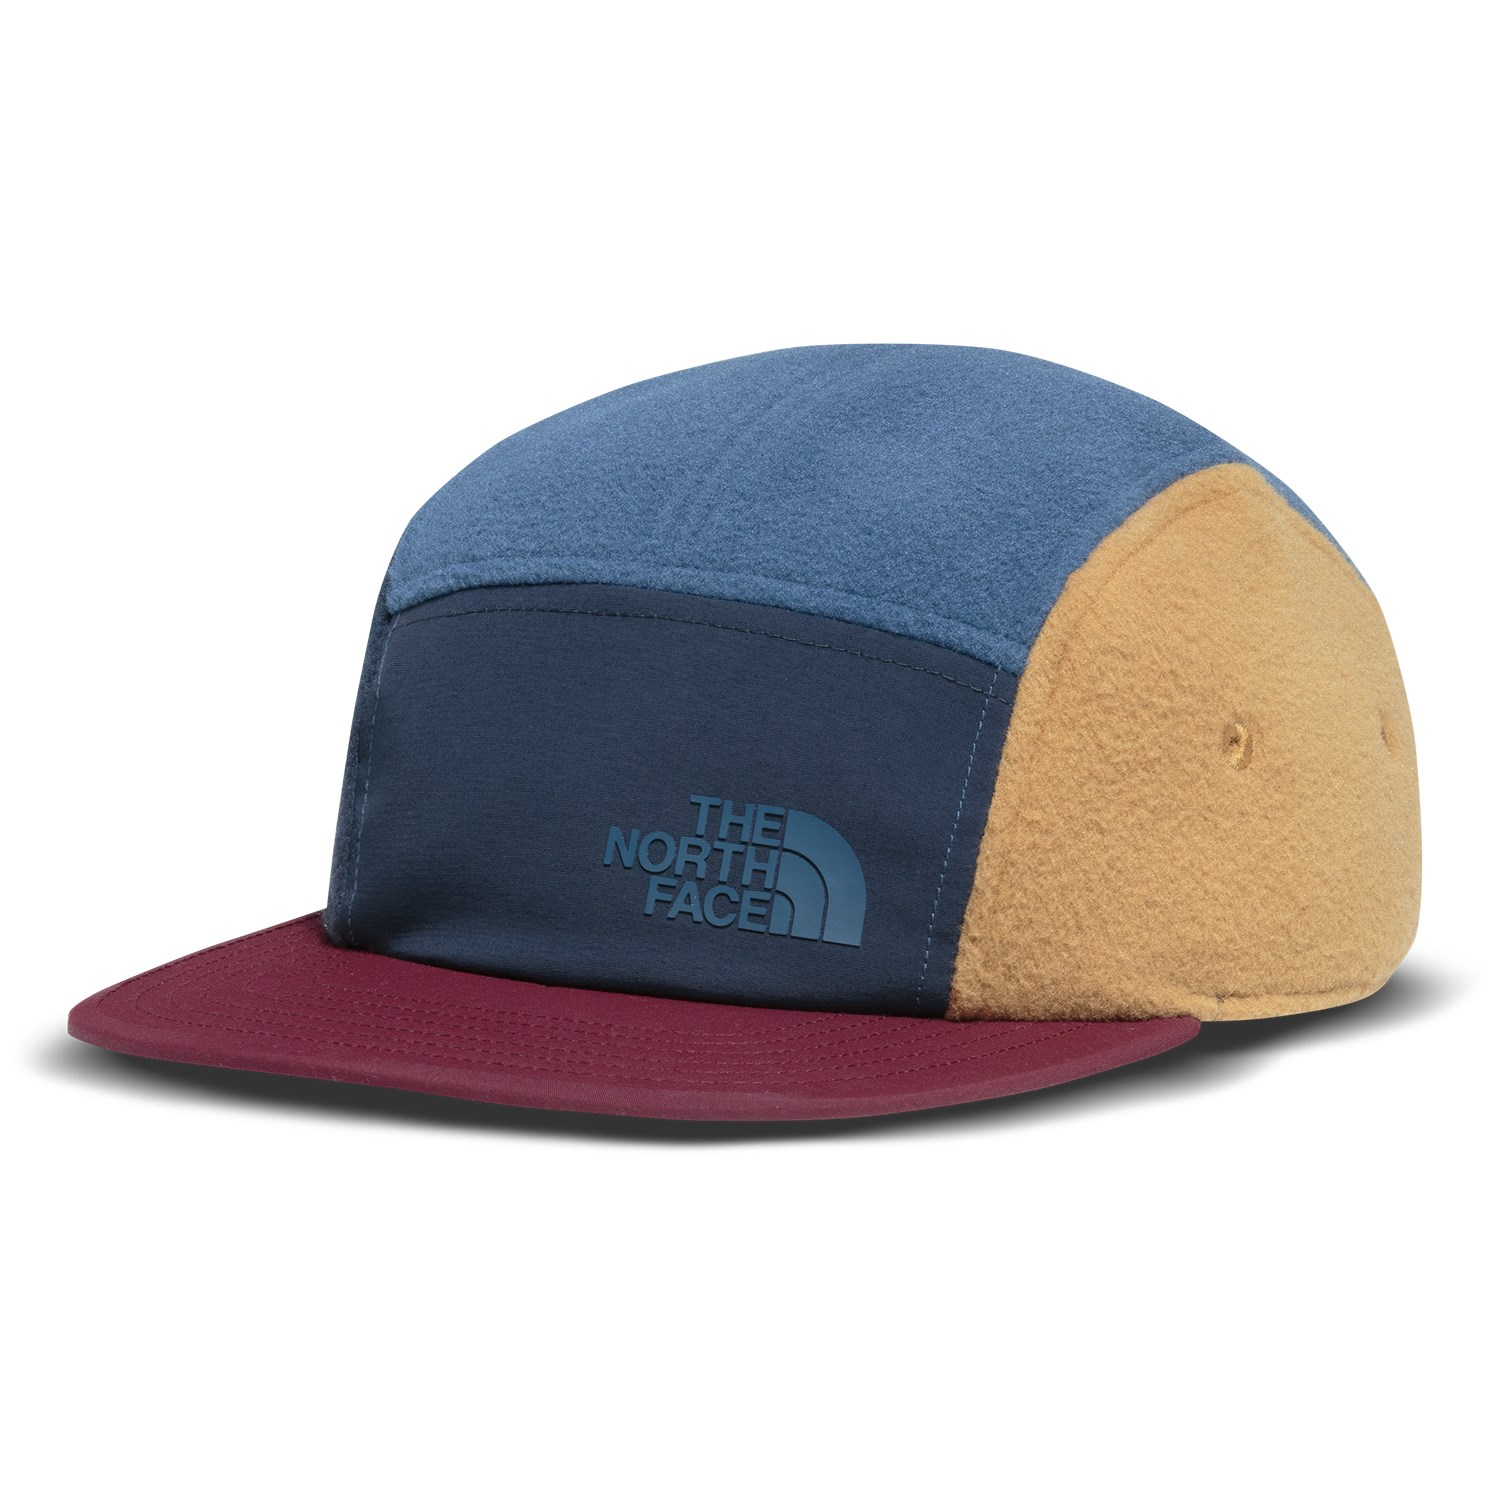 The North Face Denali Five Panel Hat  f792f2b10bca